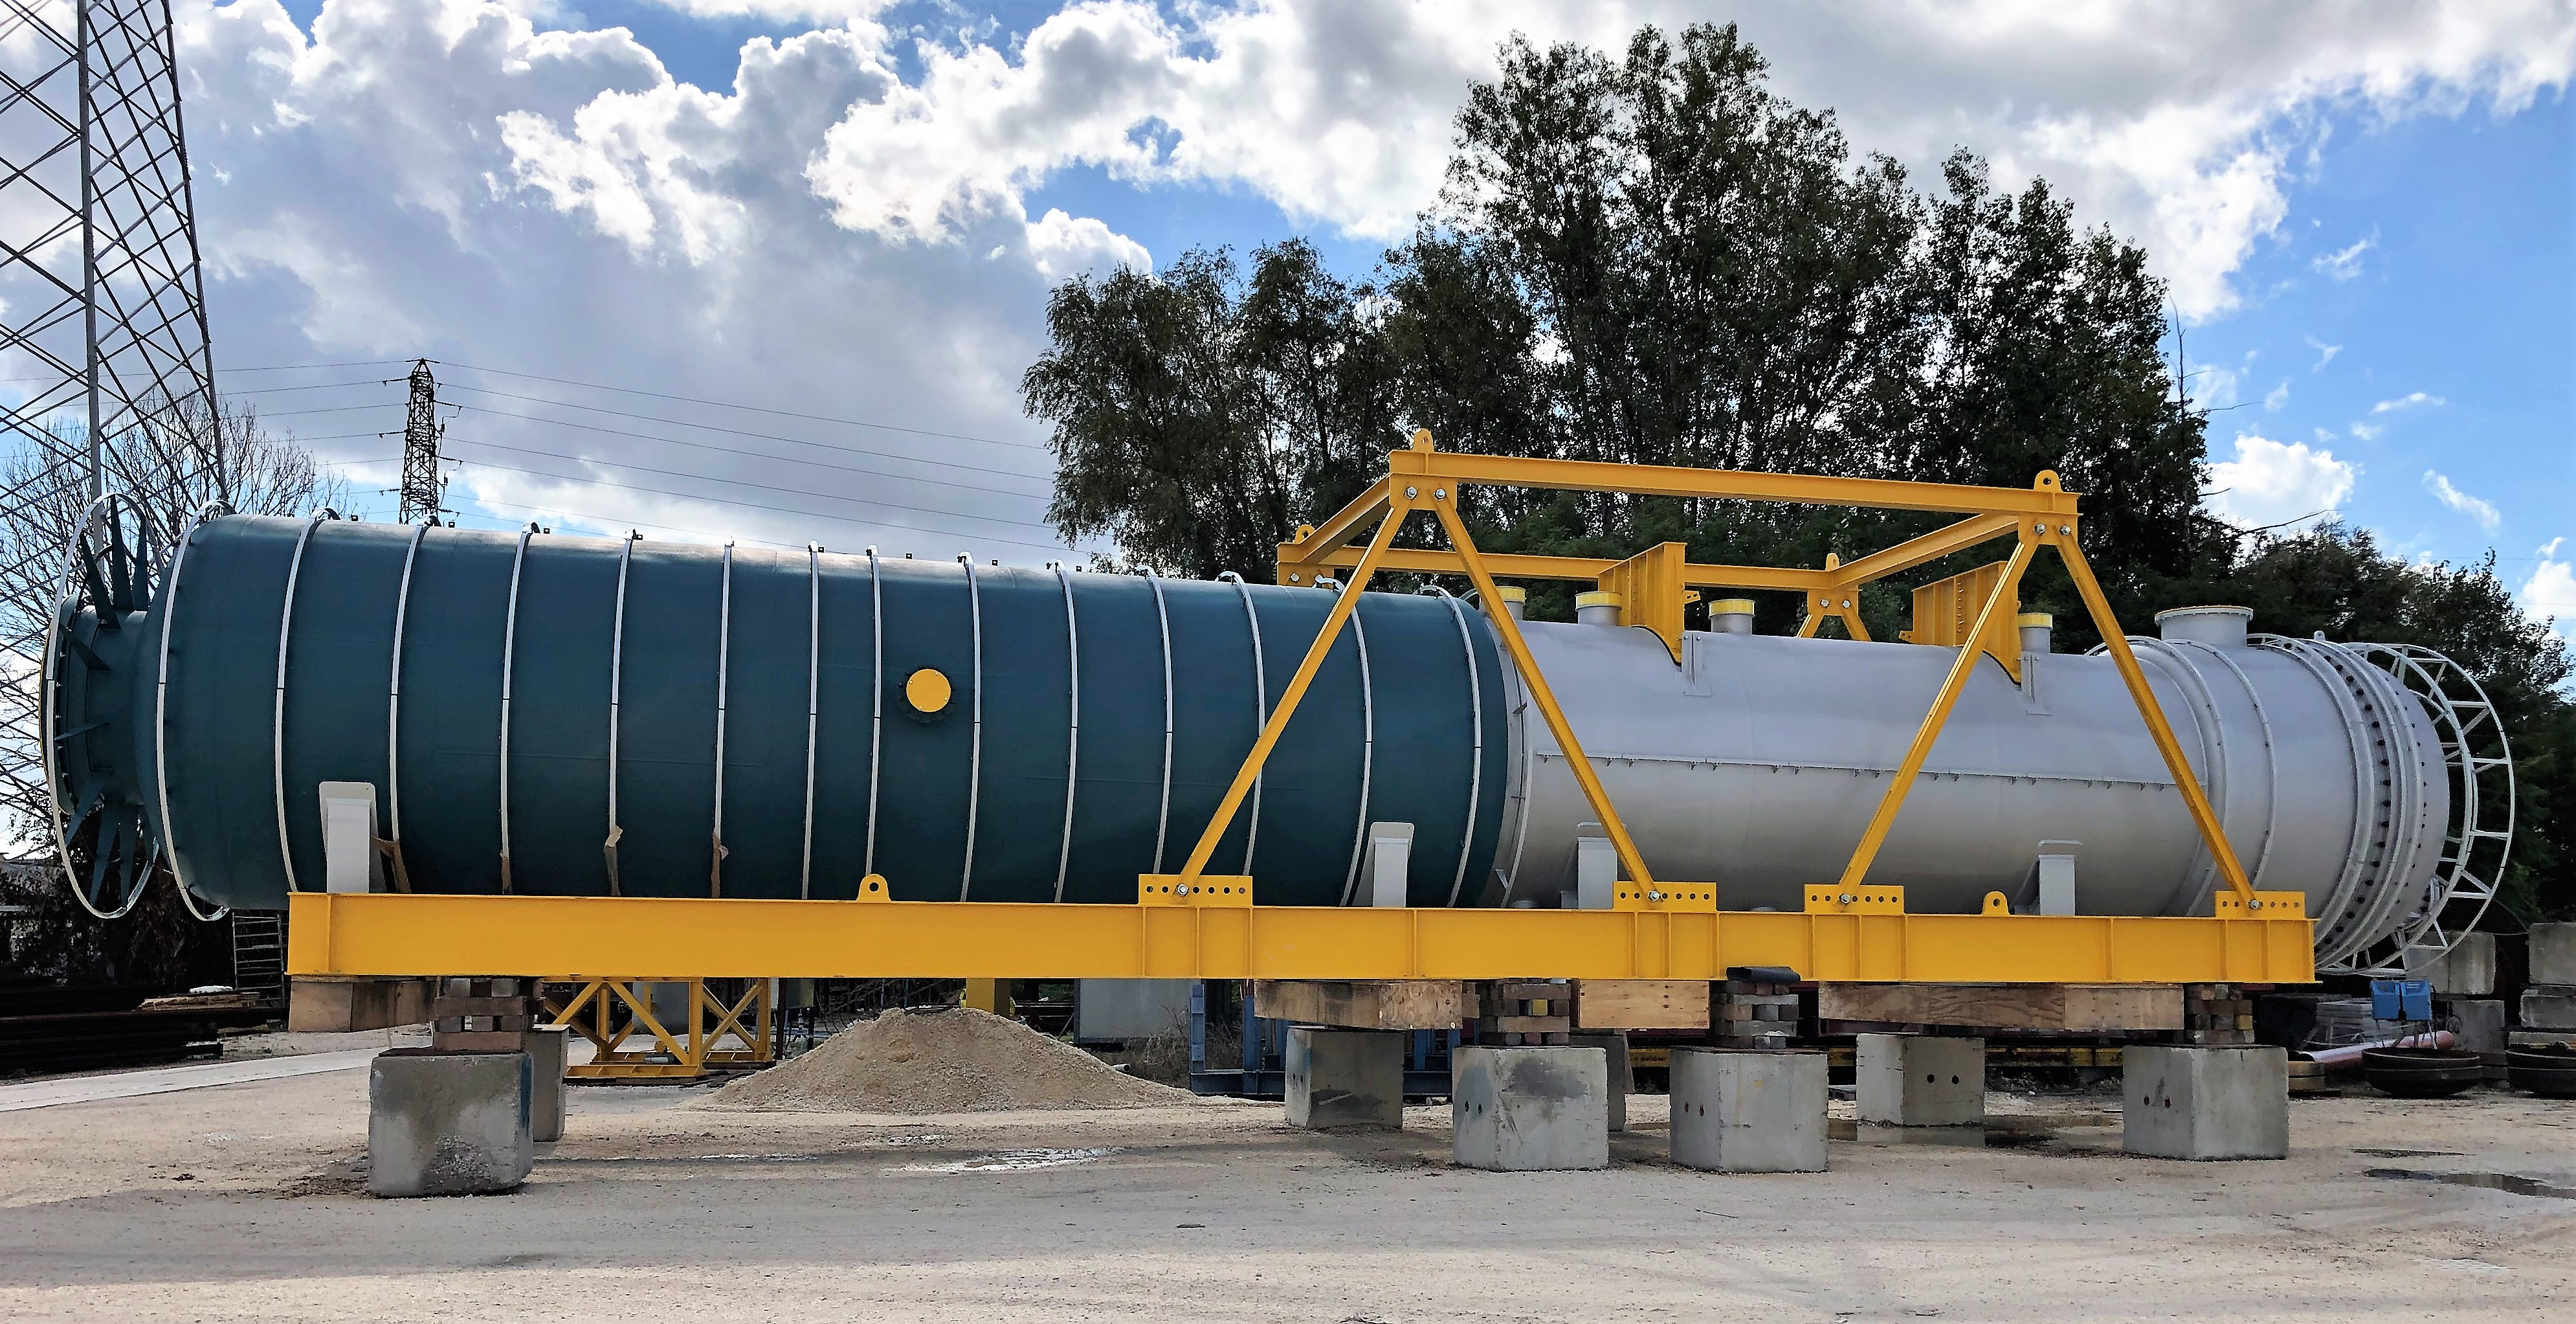 WASTE HEAT BOILER PACKAGE (THERMAL REACTOR + WHB + SD WITH RISERS & DOWNCOMERS) IN SA 516 GR.60 / SA 210 GR.A1 - SIZE: 3.200 X 22.500 AT MIDOR REFINERY EXPANSION, EGYPT